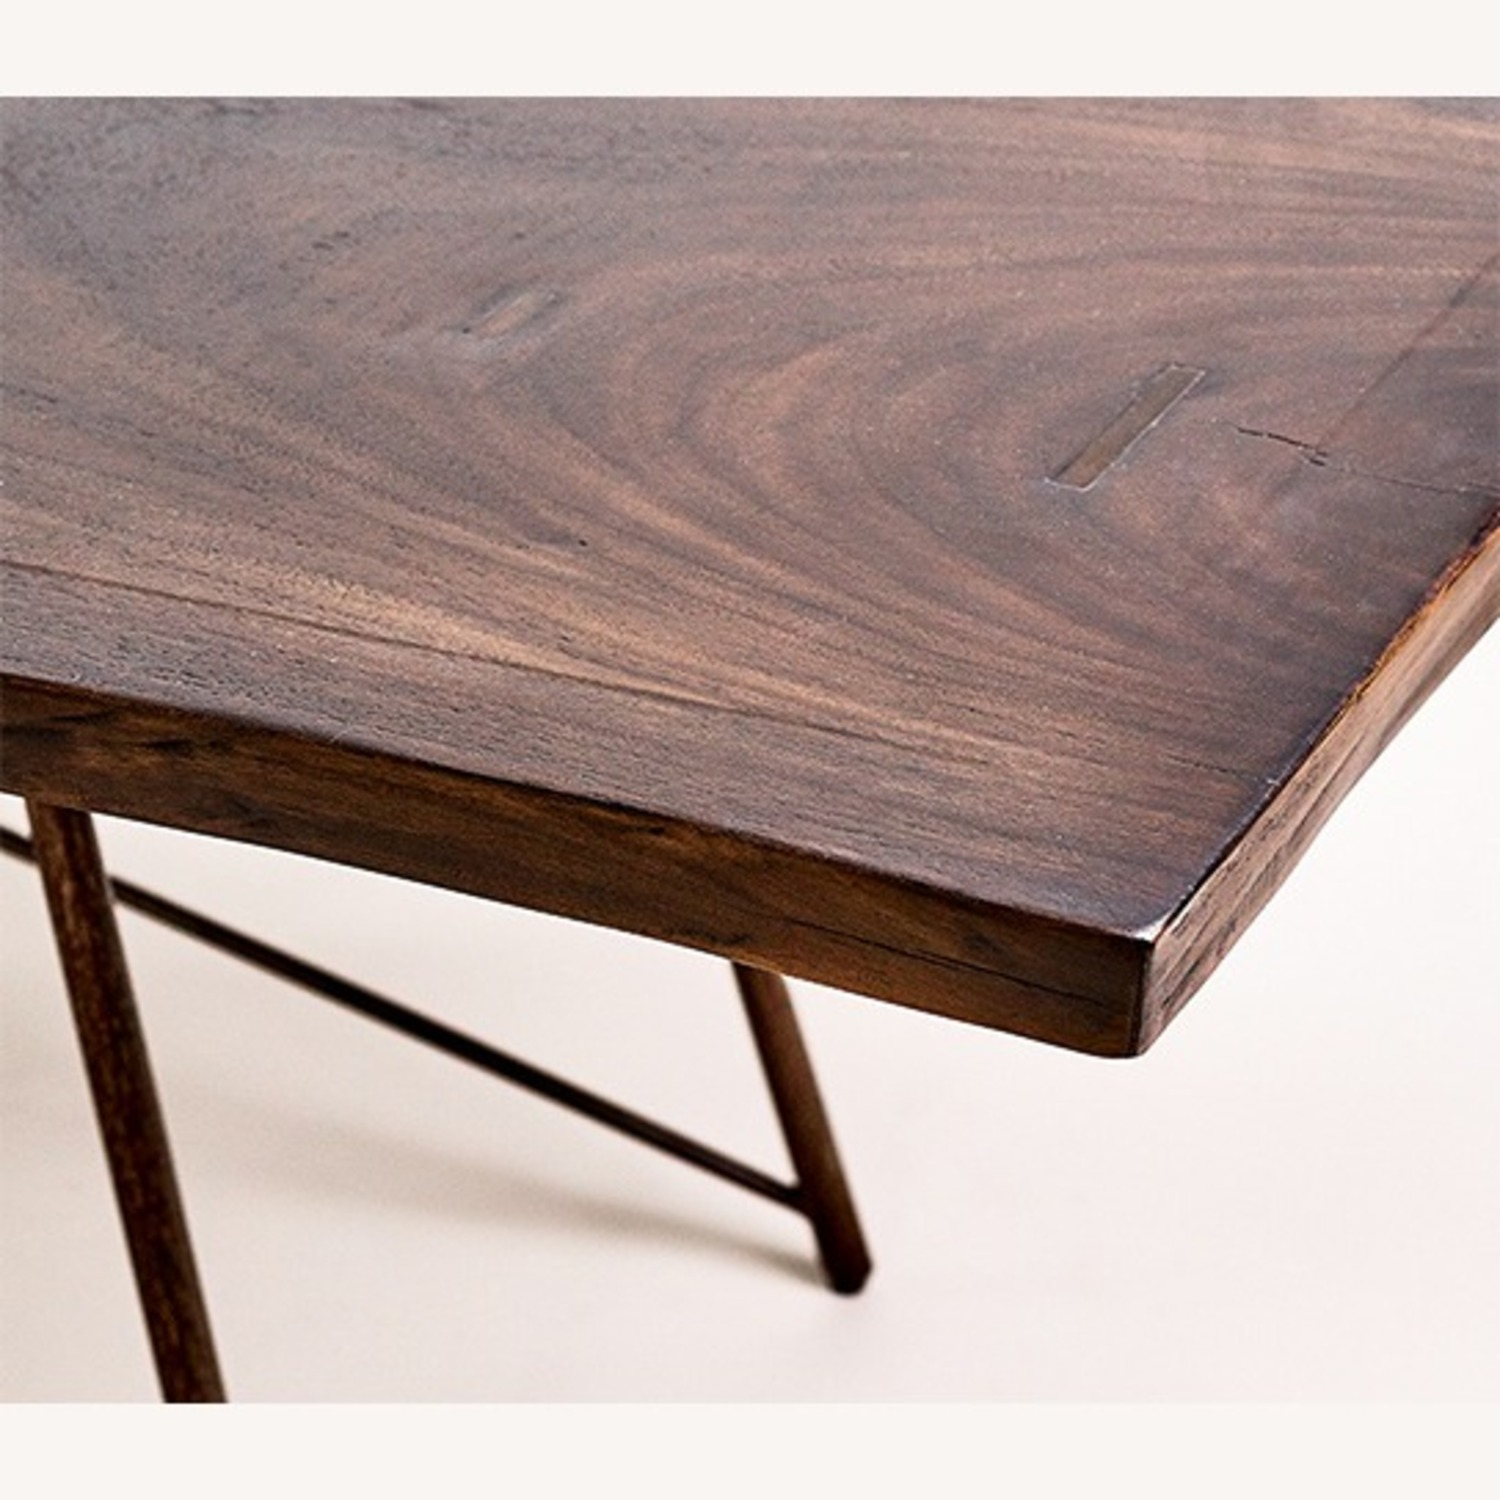 Four Hands Sula Dining Table - image-4